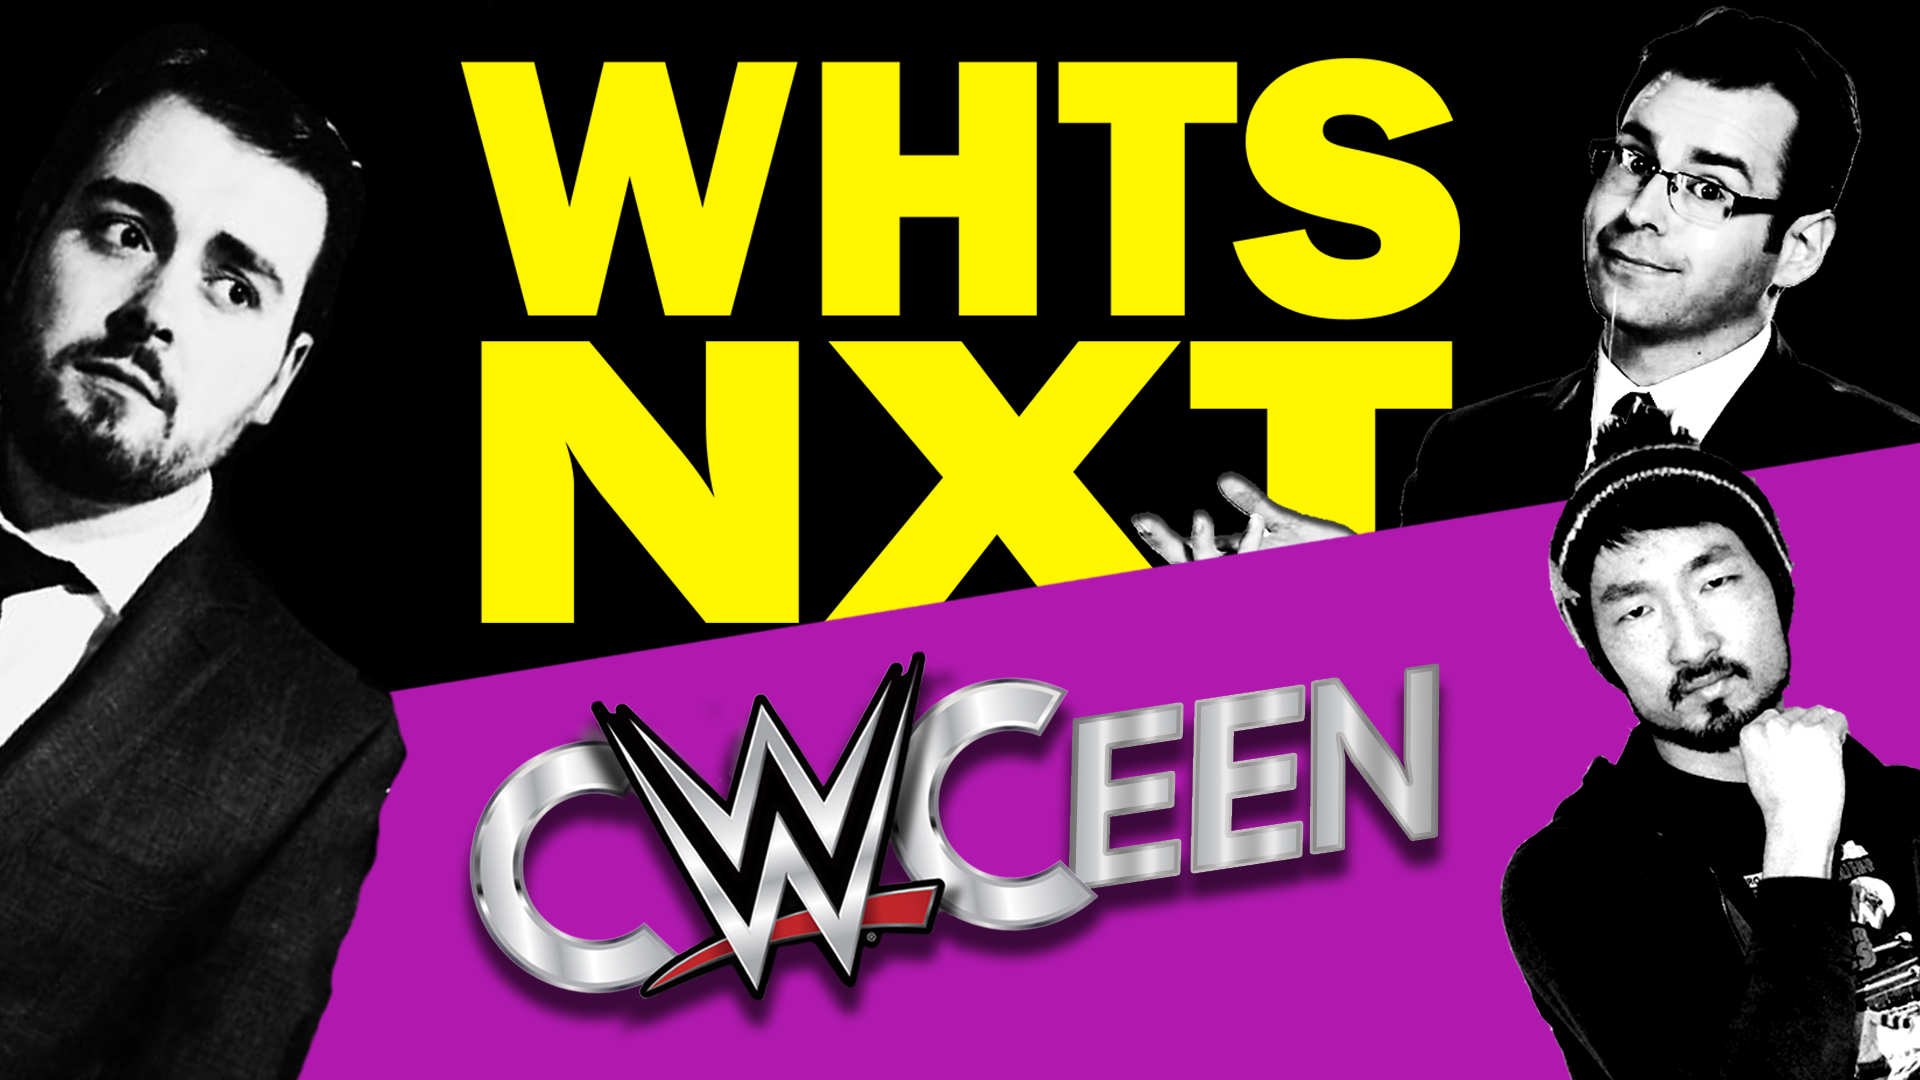 whtsNXT CWCeen